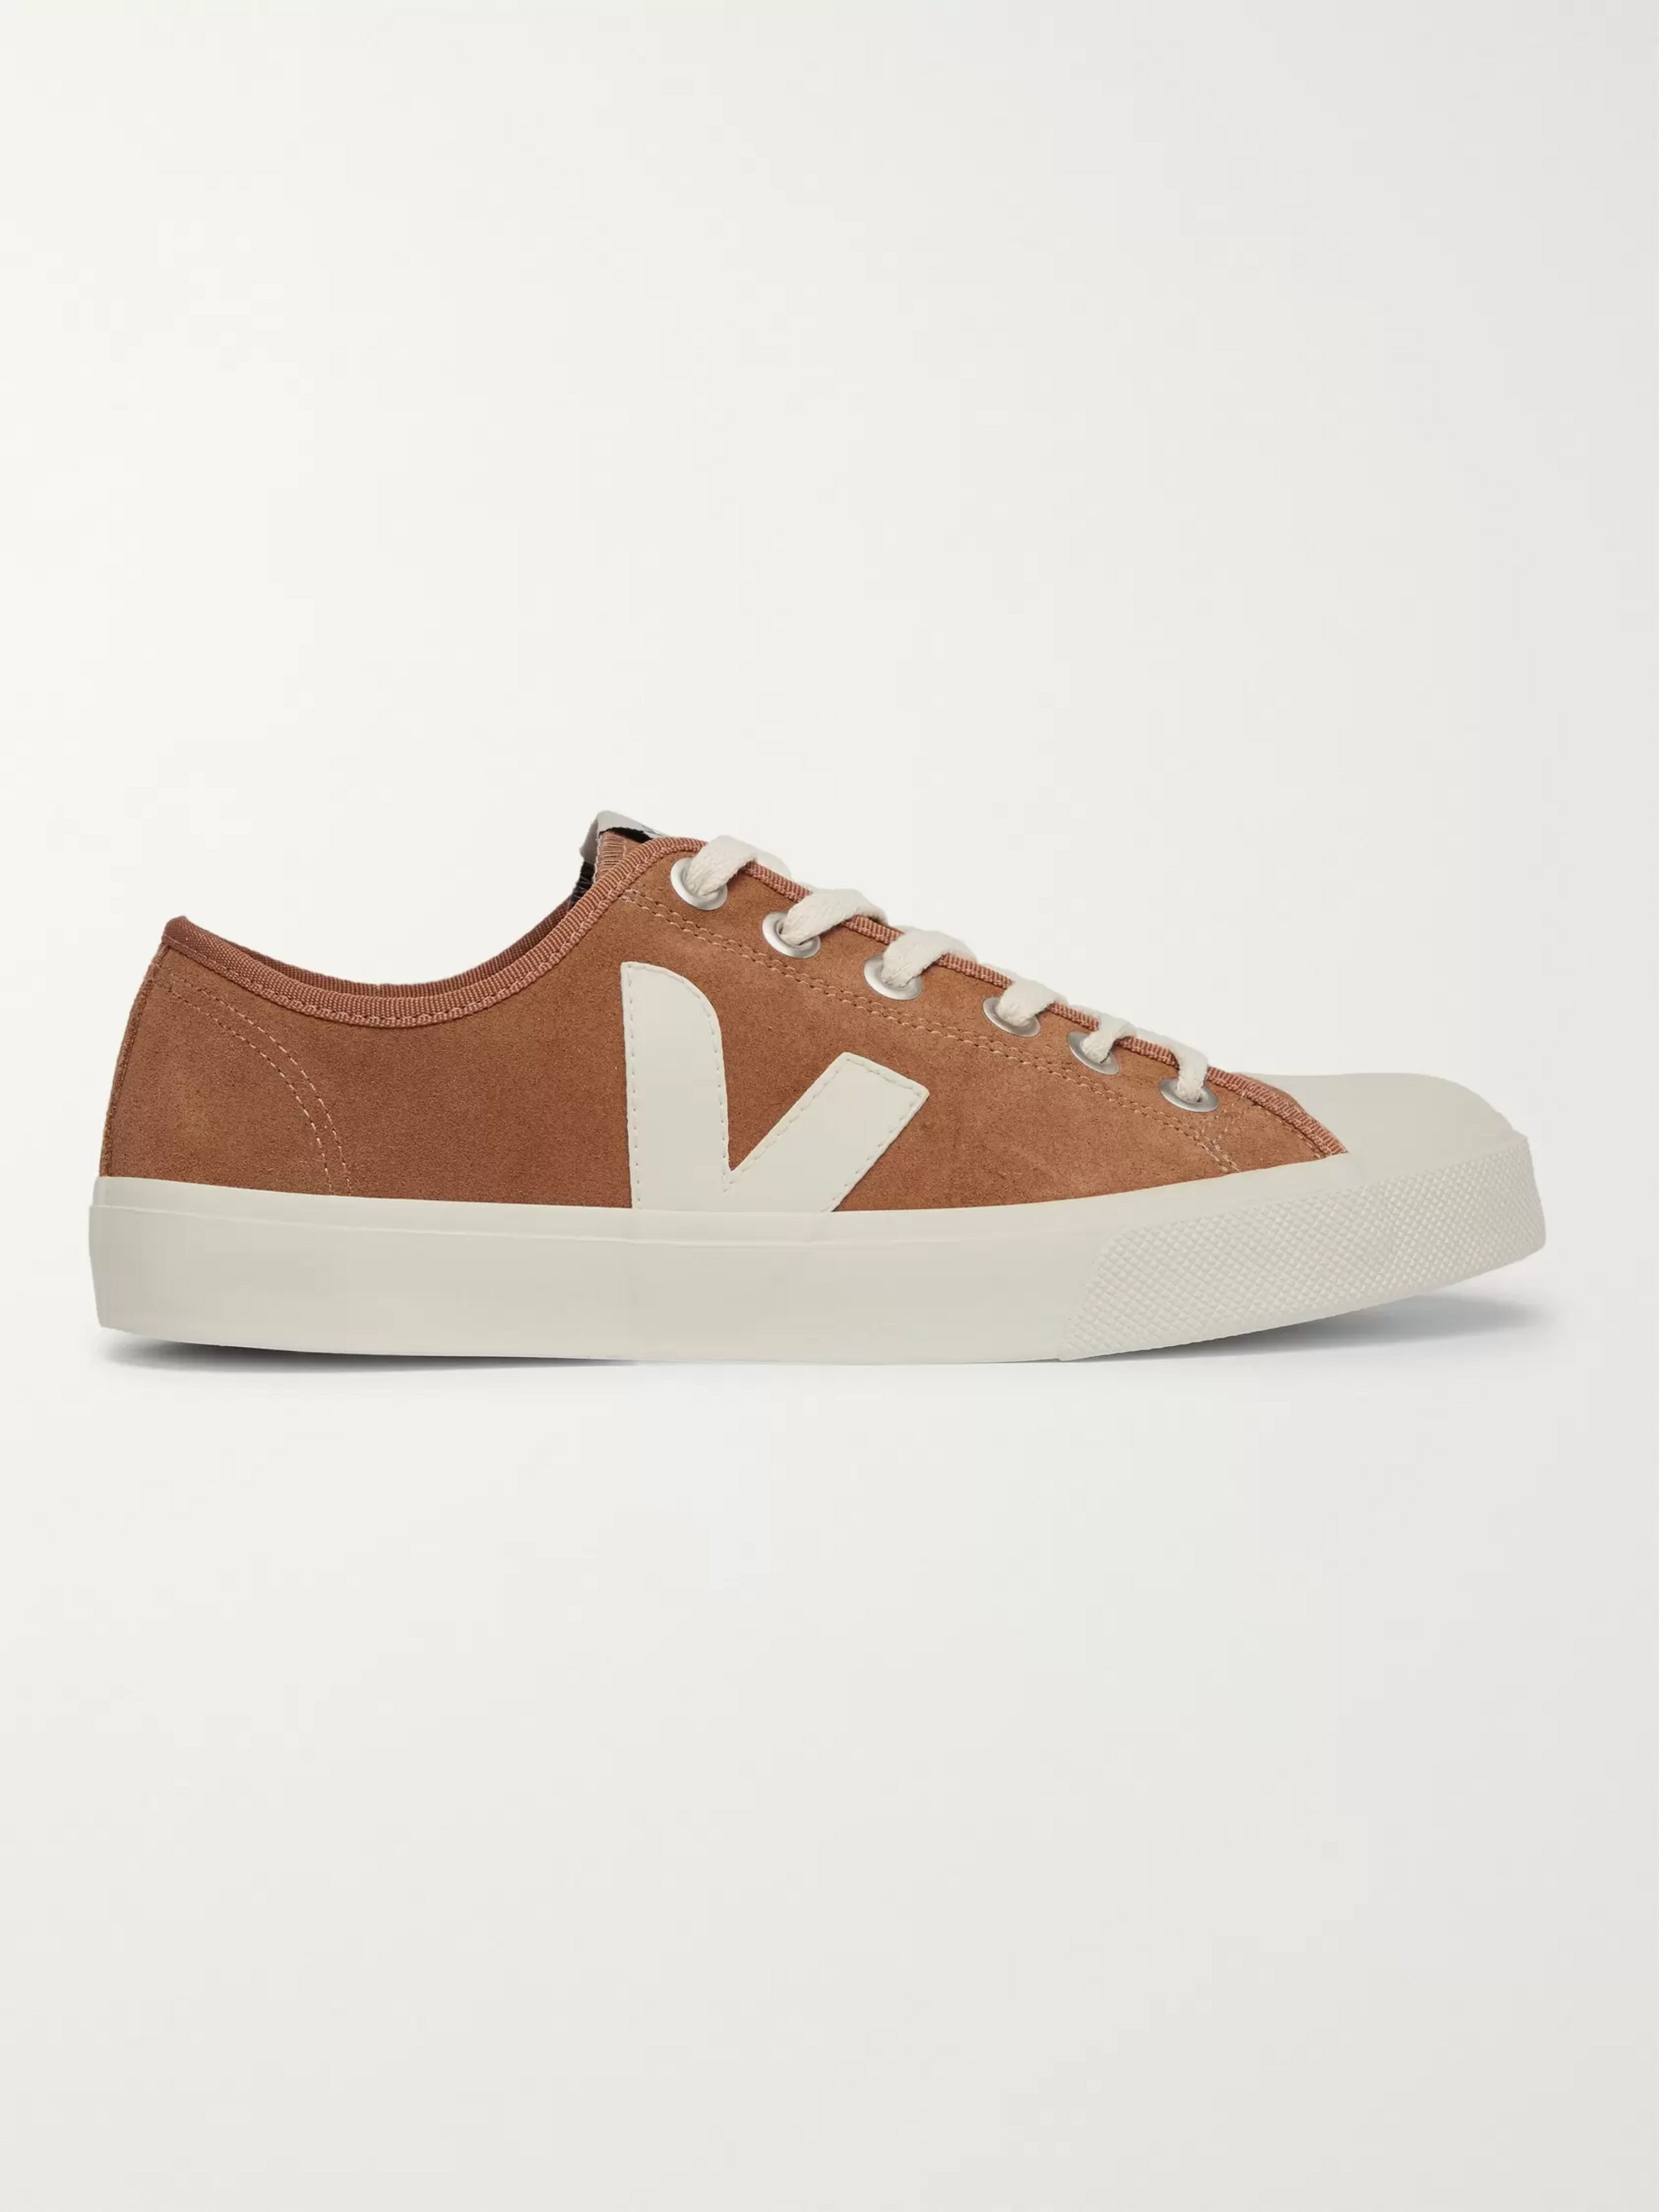 Veja Wata Rubber-Trimmed Suede Sneakers